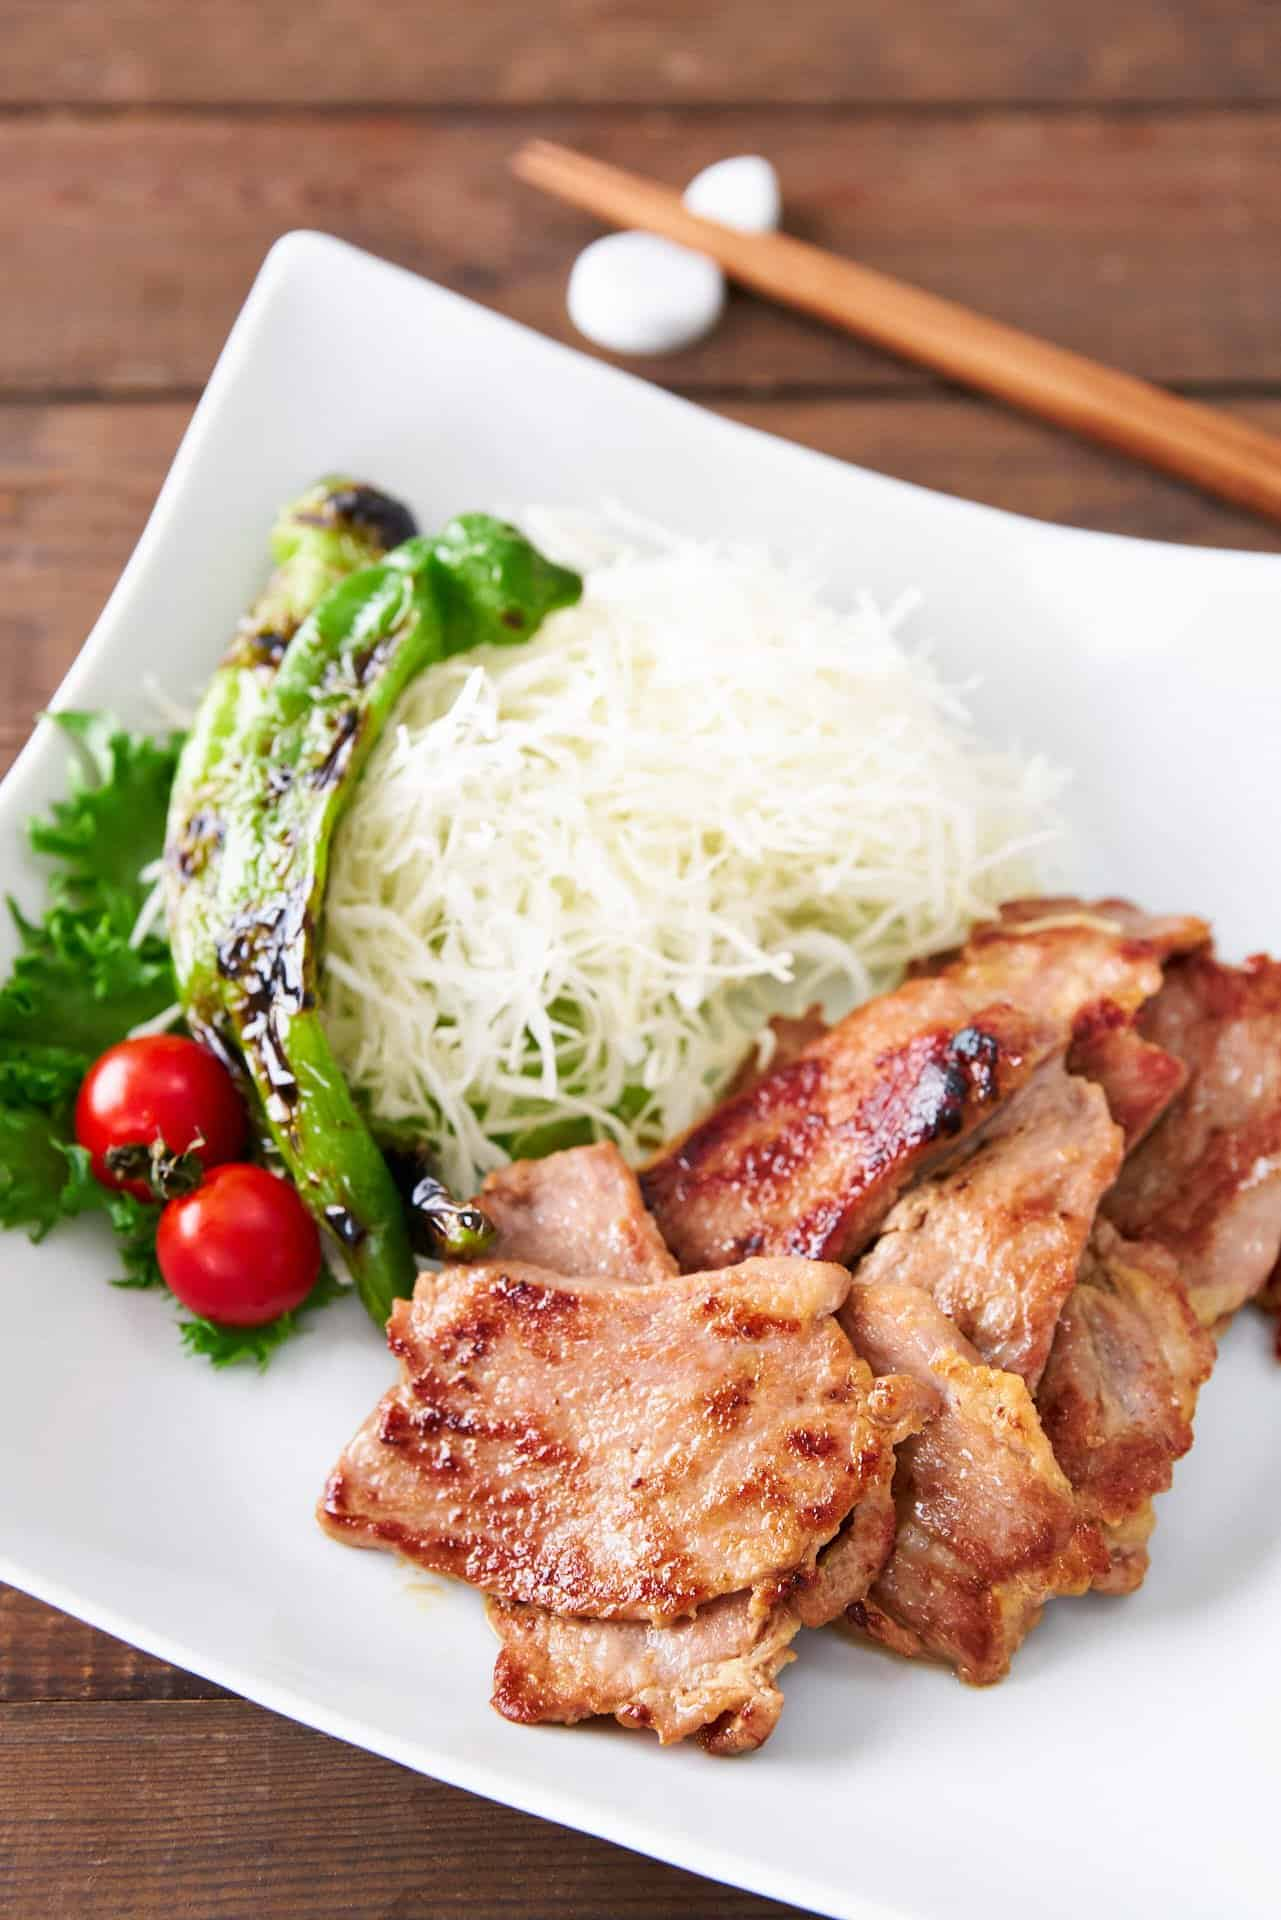 A fragrant ginger and soy sauce marinade turns a cheap cut of pork into tender and delicious Japanese-style Ginger Pork, or Shogayaki.